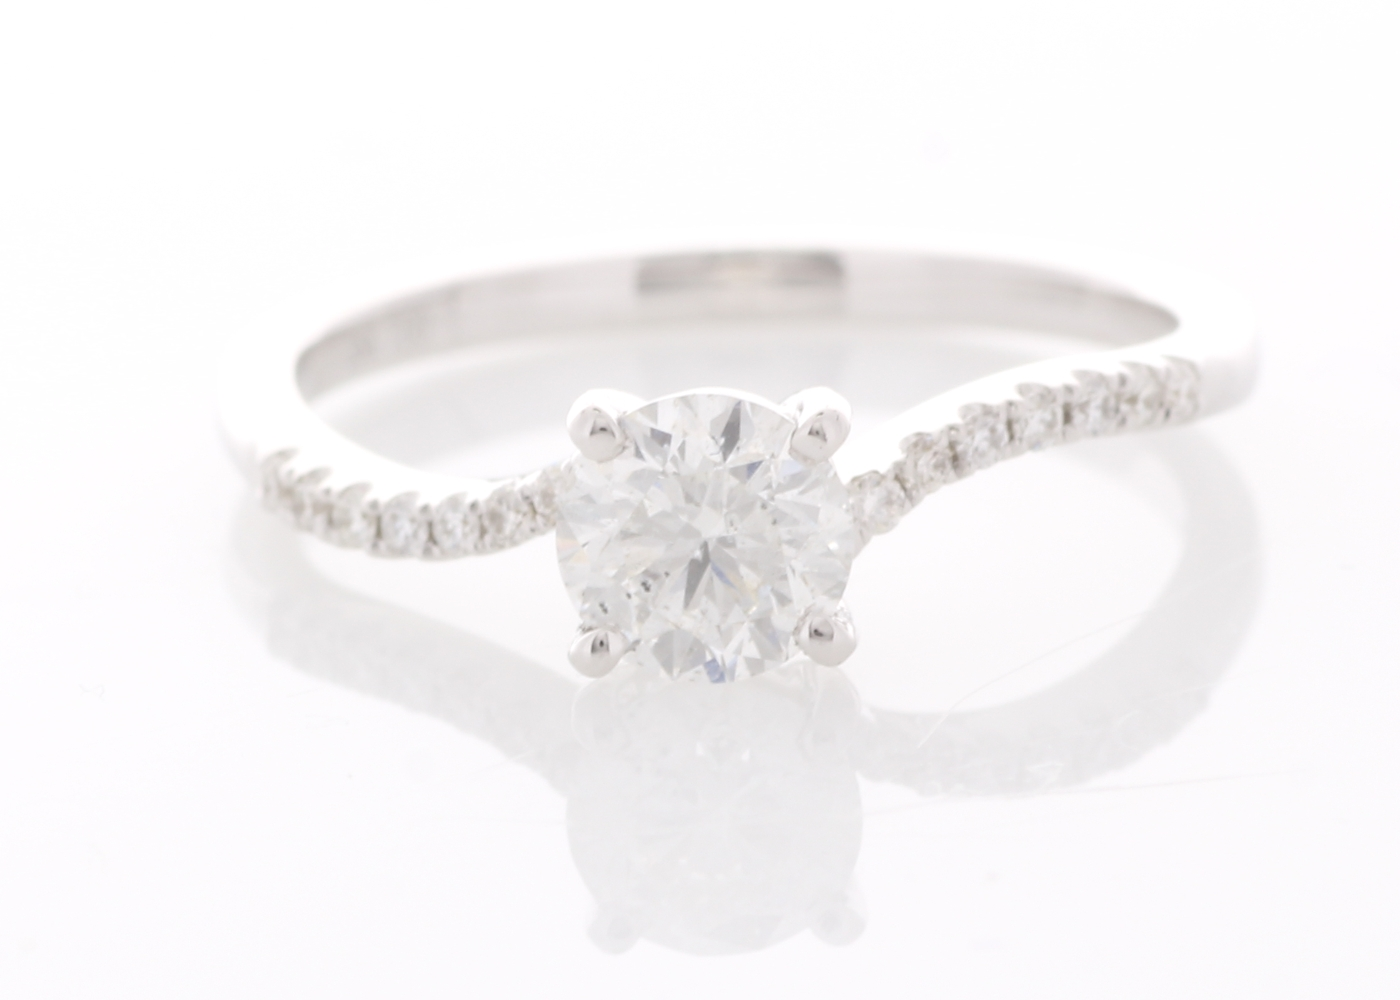 Lot 25 - 18ct White Gold Prong Set With Stone Set Shoulders Diamond Ring 0.73 Carats